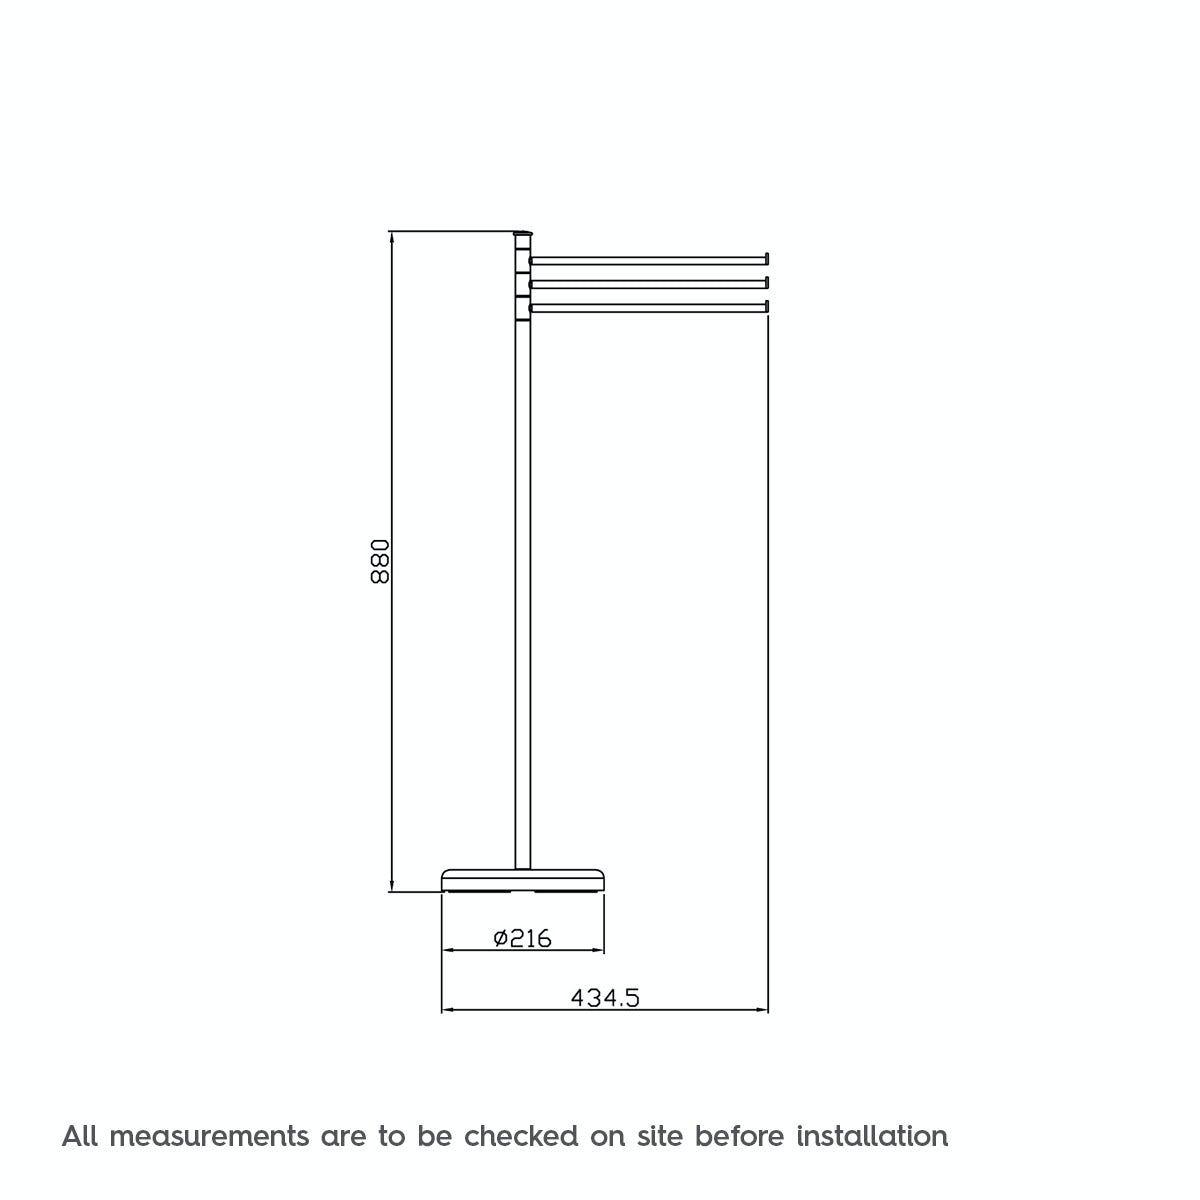 Dimensions for Orchard Options contemporary freestanding towel rail